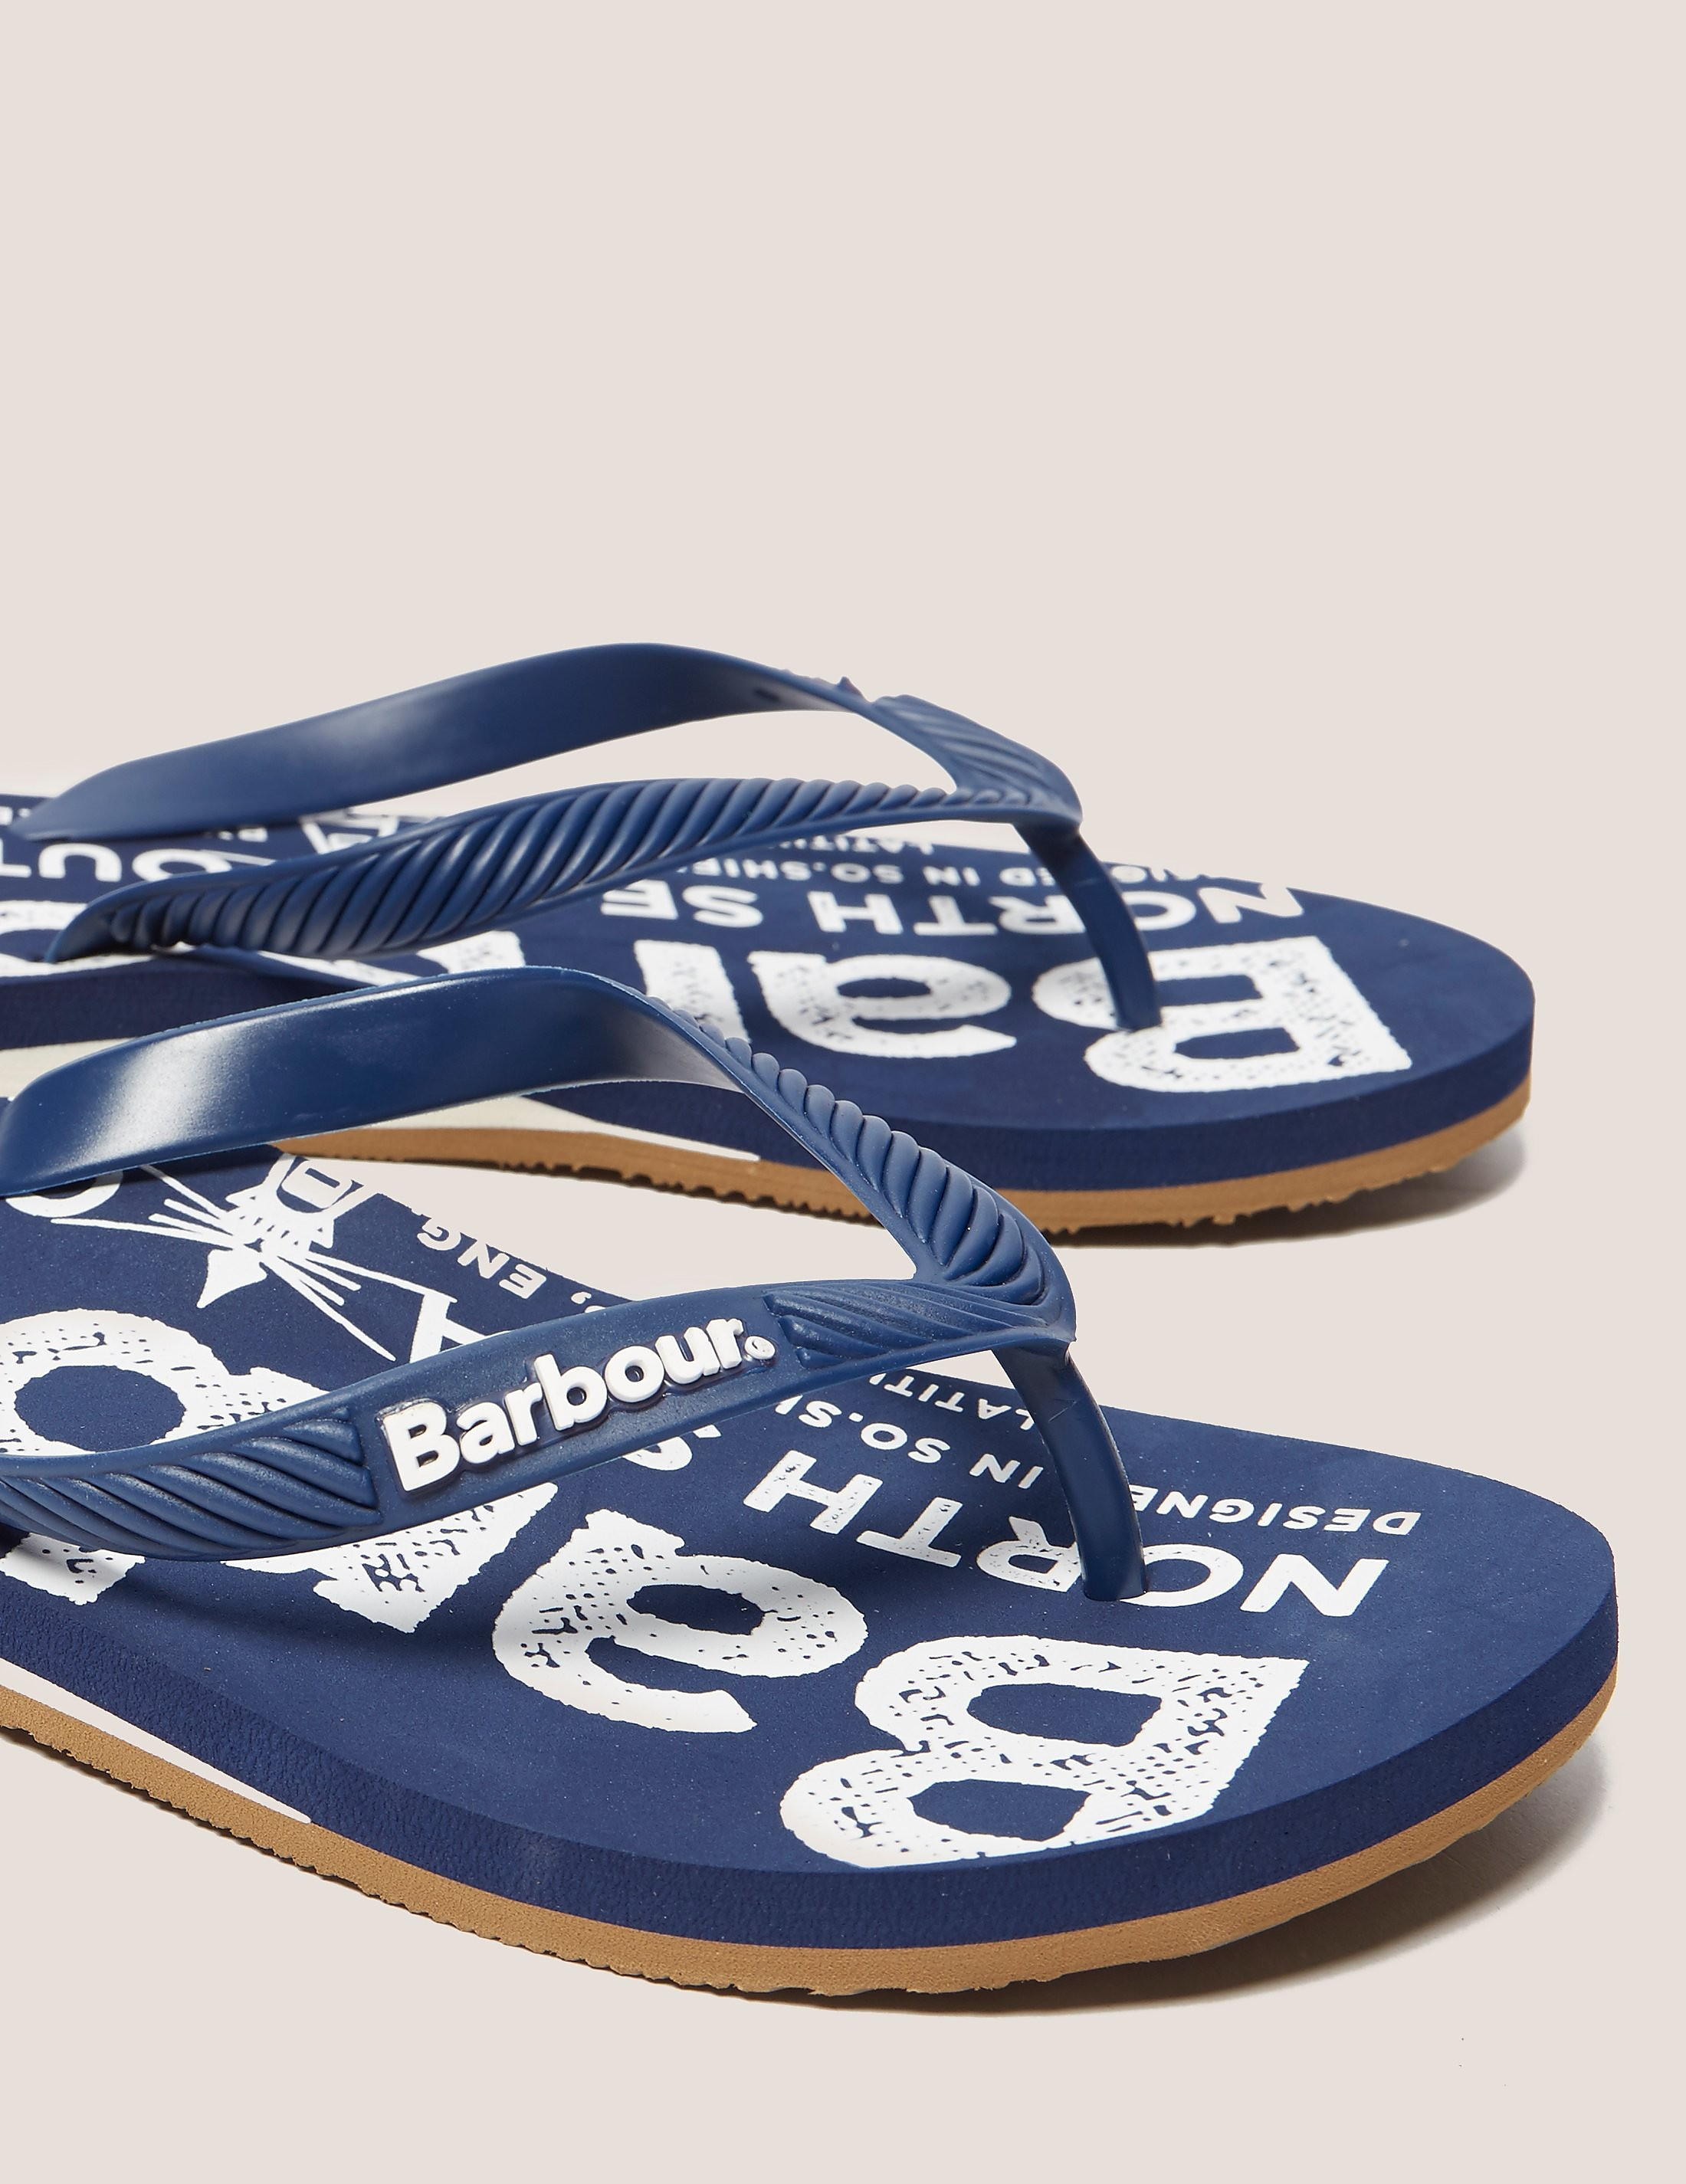 Barbour North Sea Beach Flip Flops